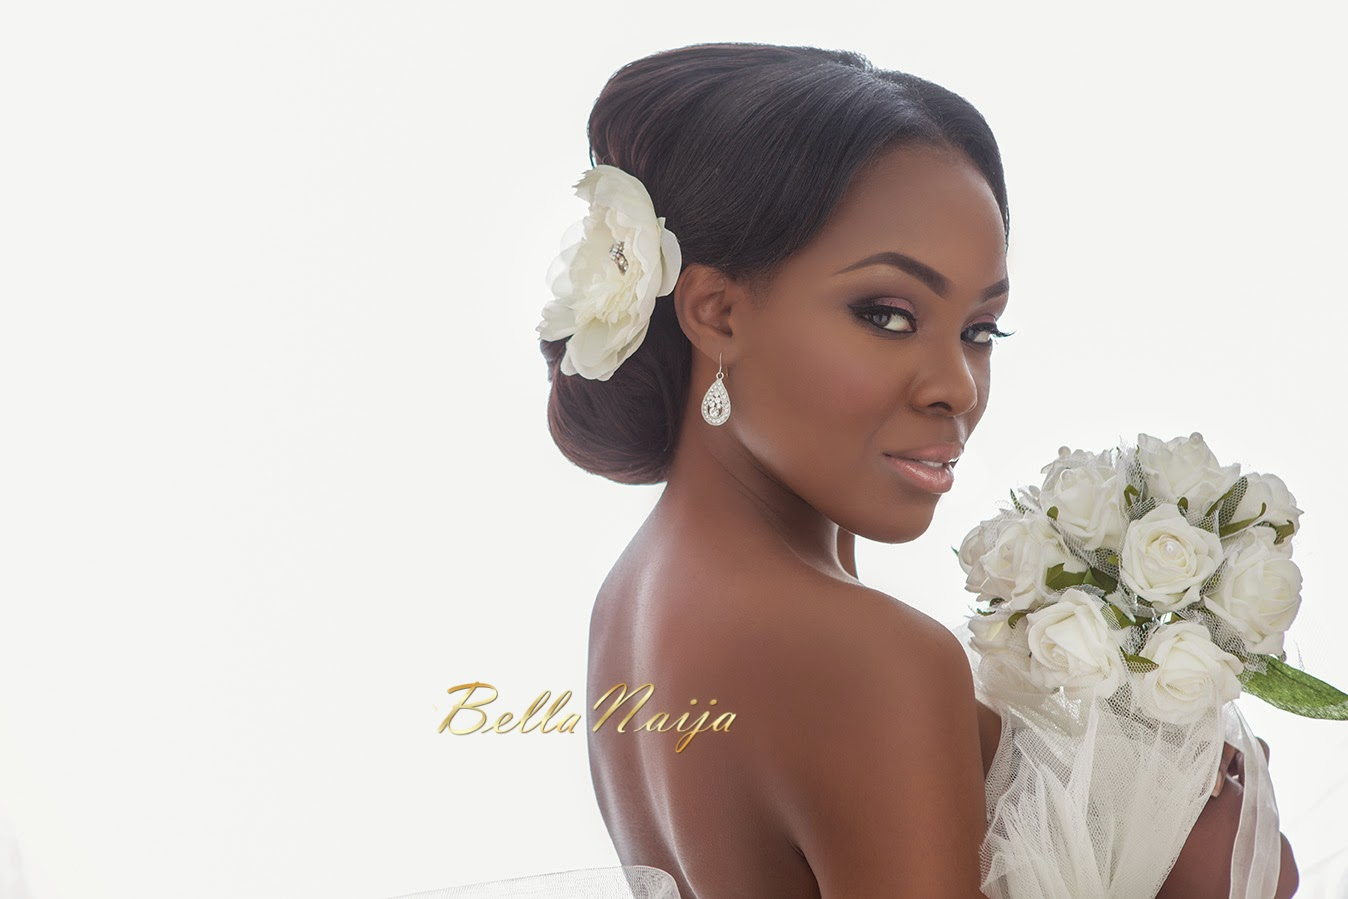 Bridal hairstyles for the bride to be | Weddings in Nigeria